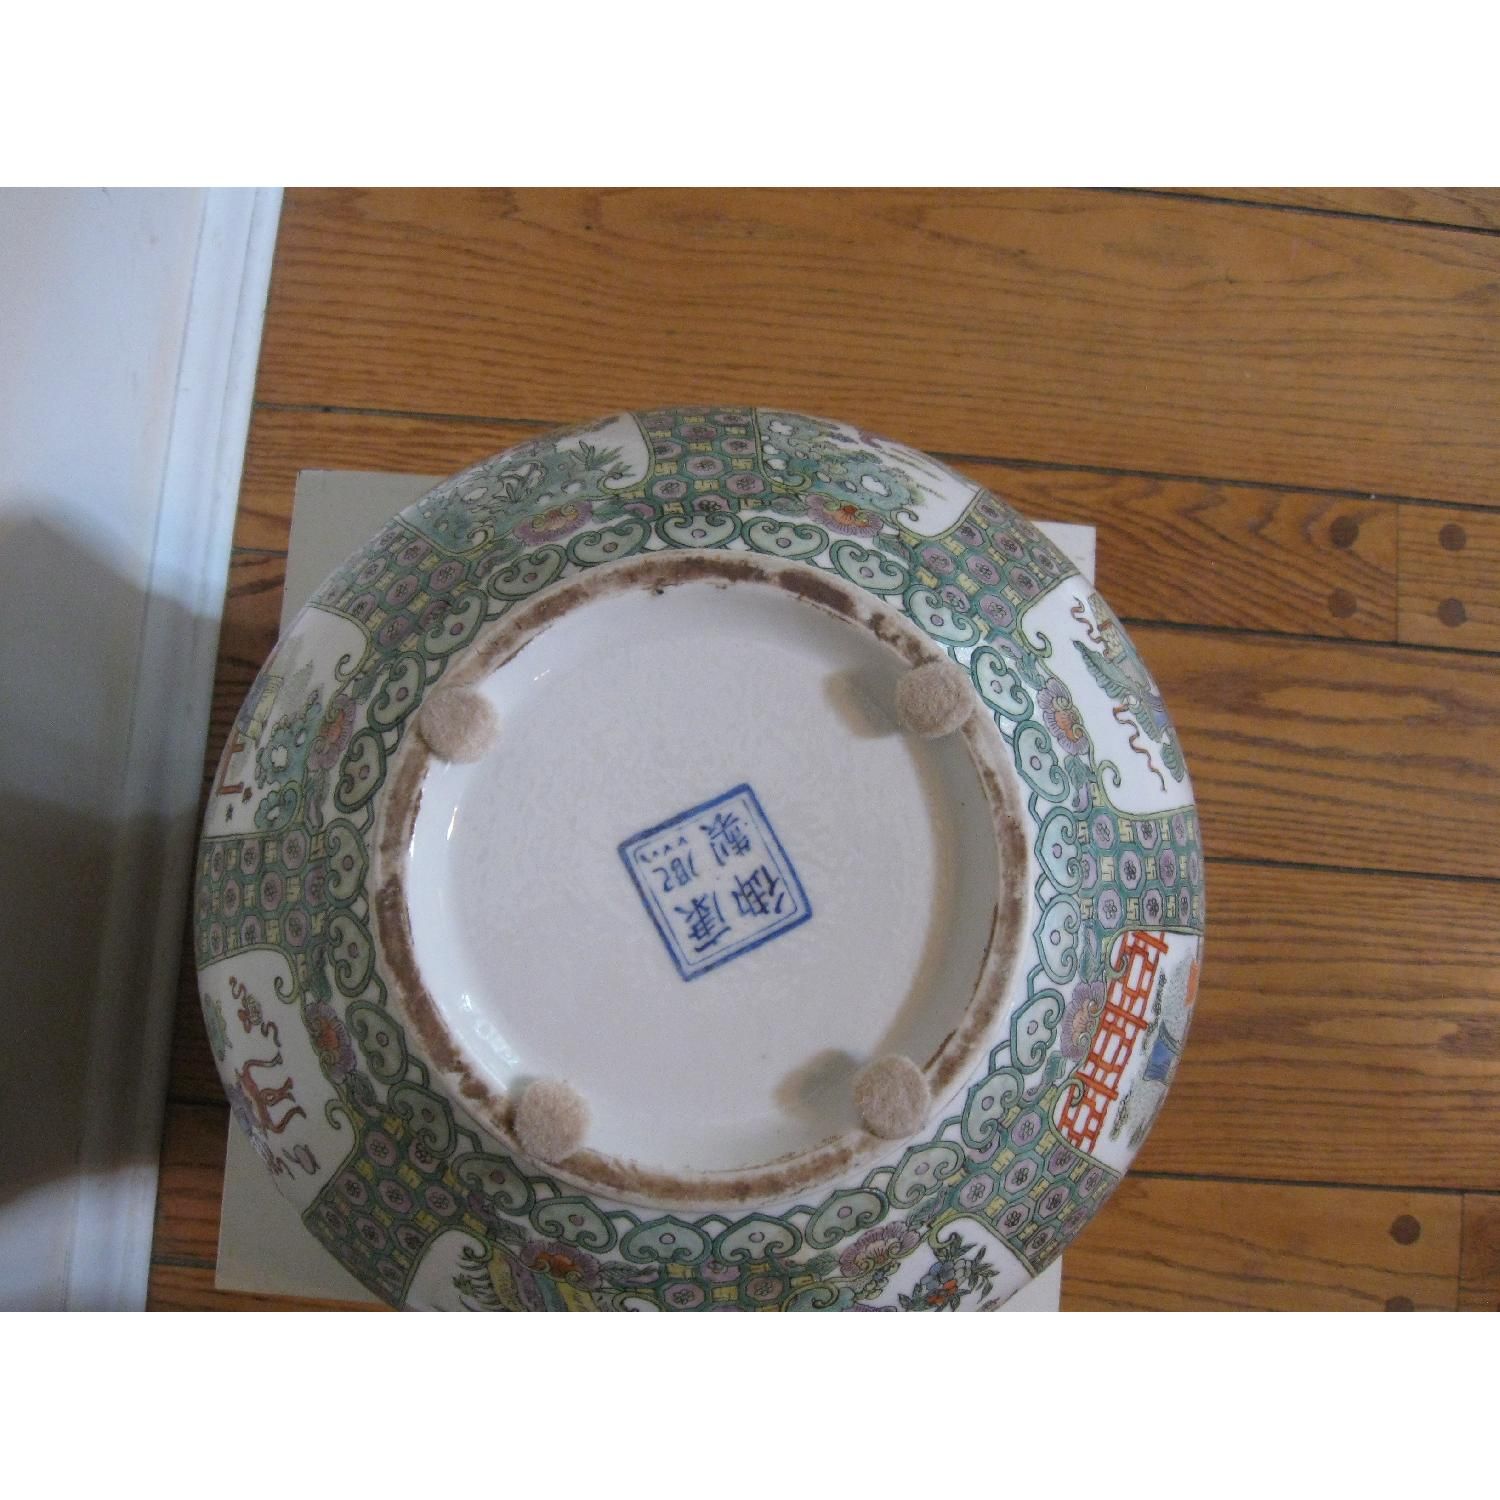 Chinese Porcelain Bowl with Scalloped Top - image-3